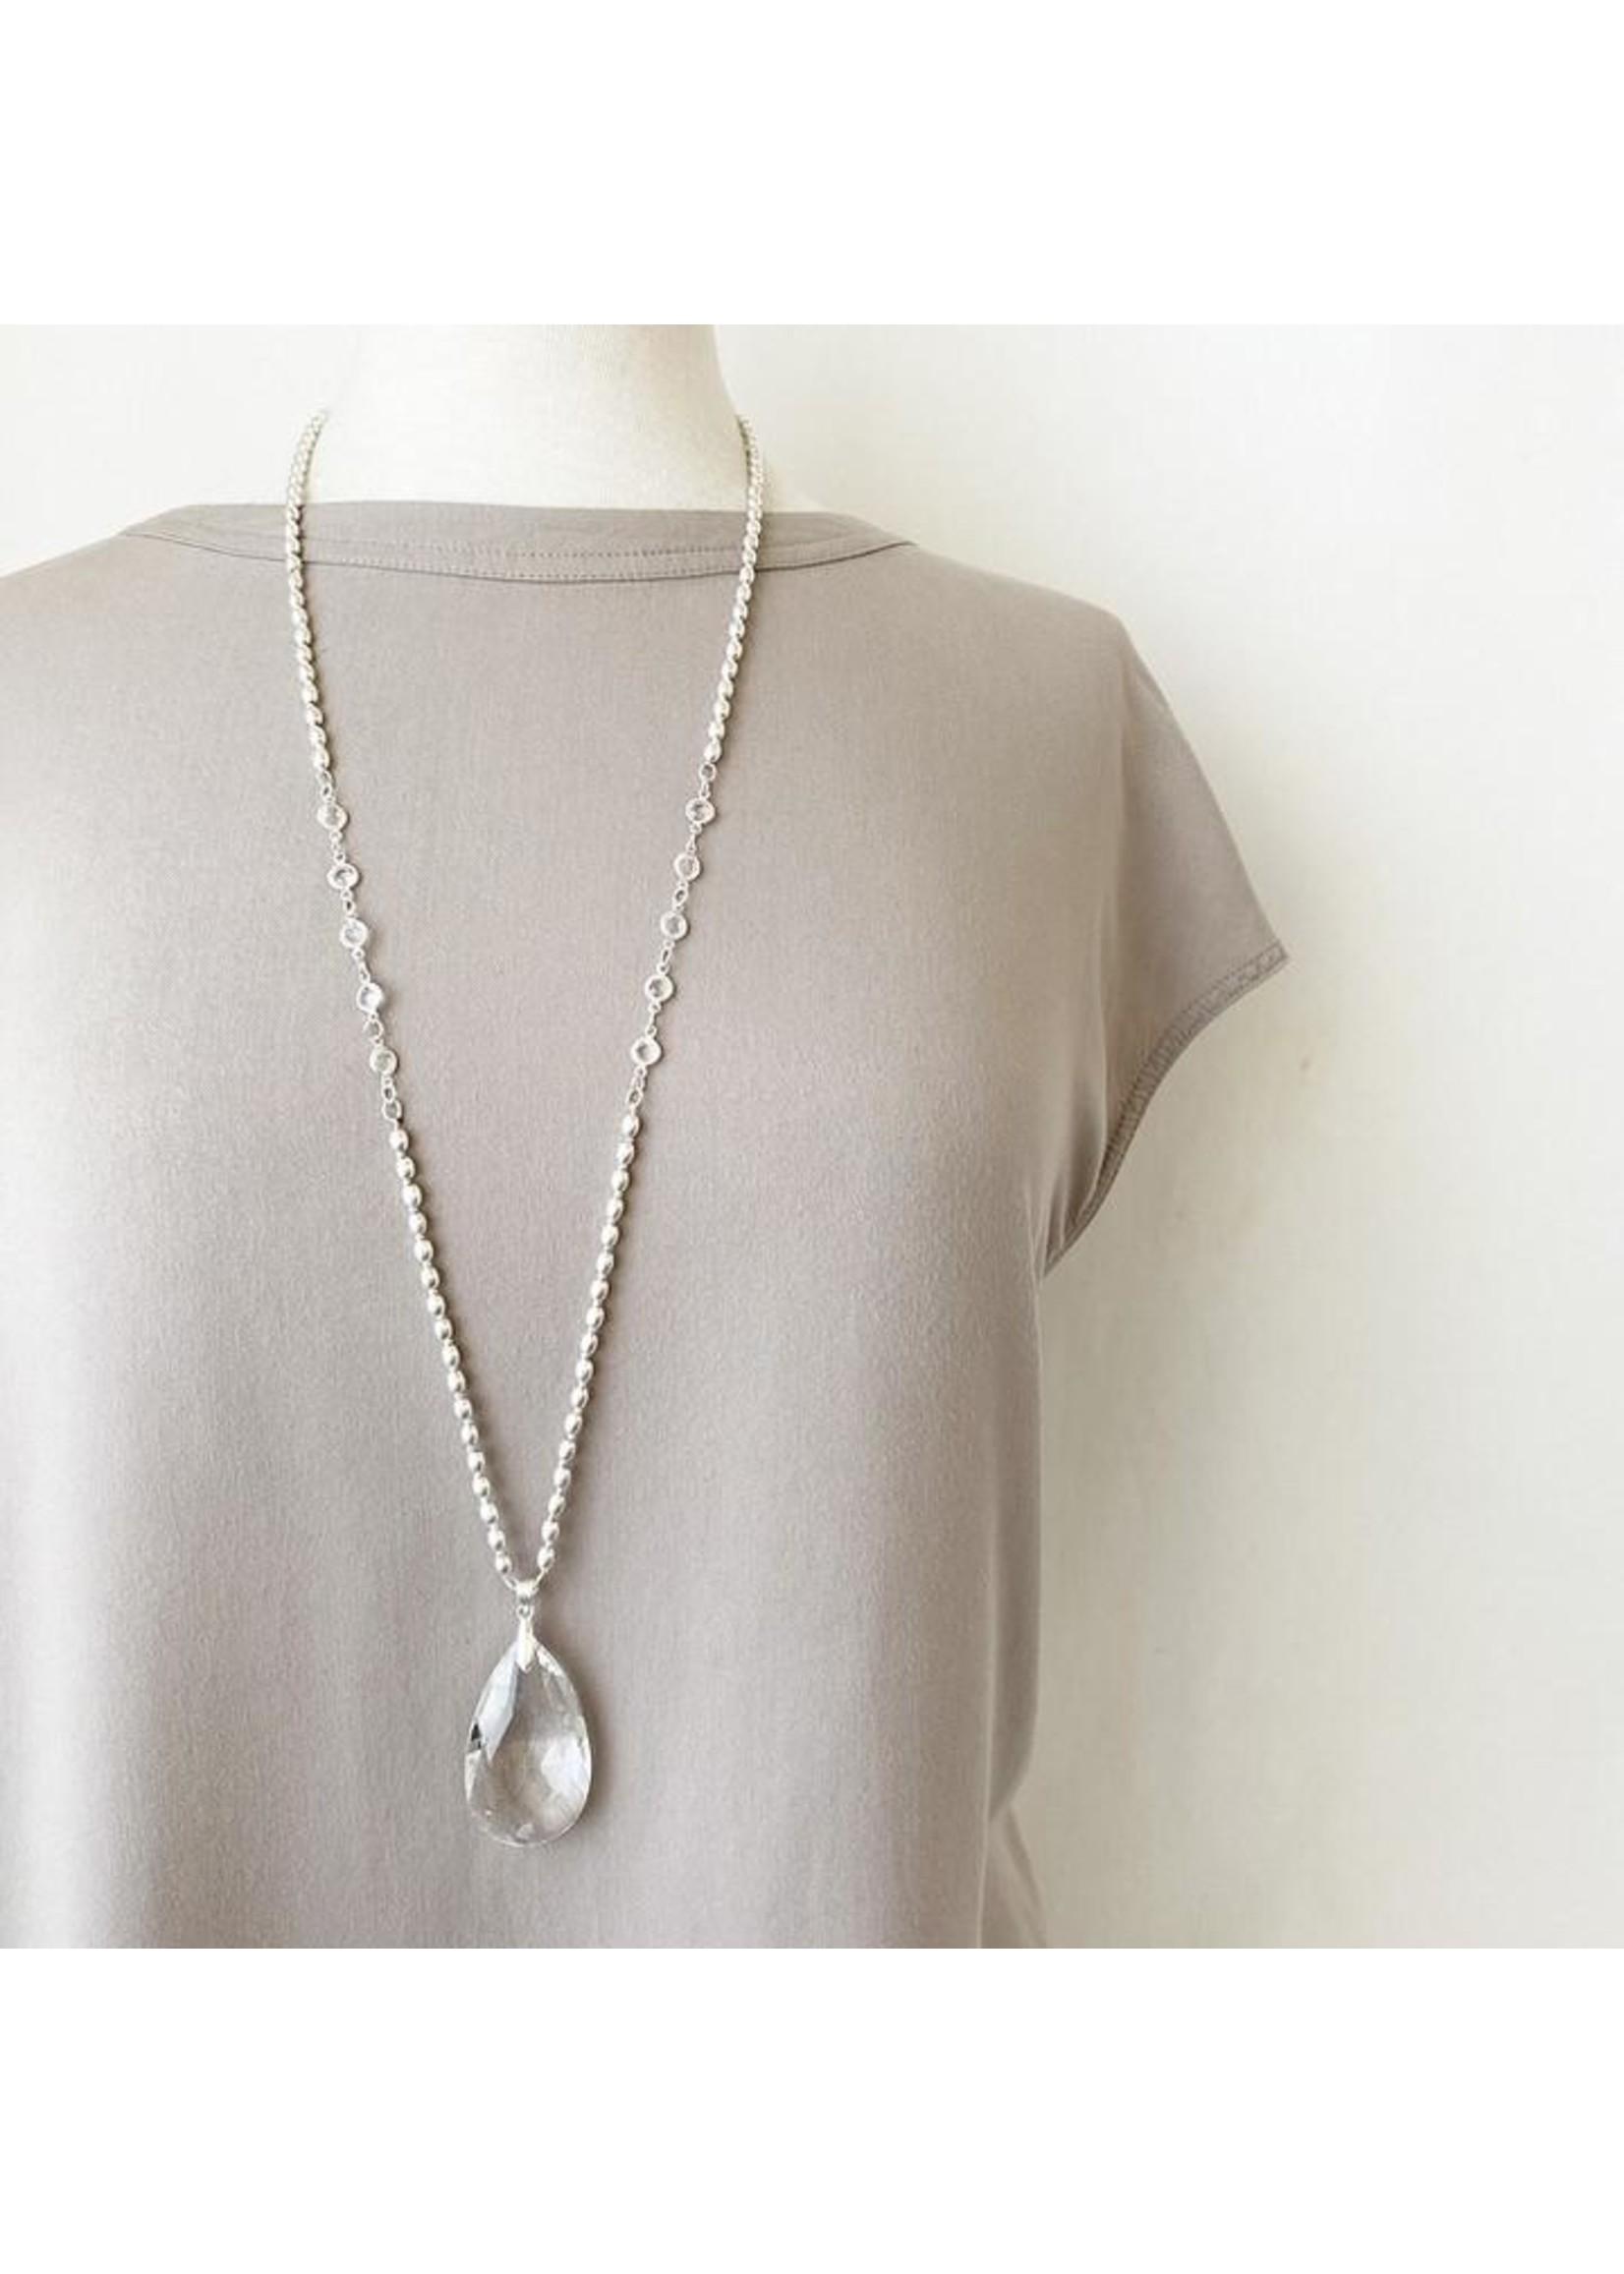 Long Necklace with Big Glass Drop Pendant